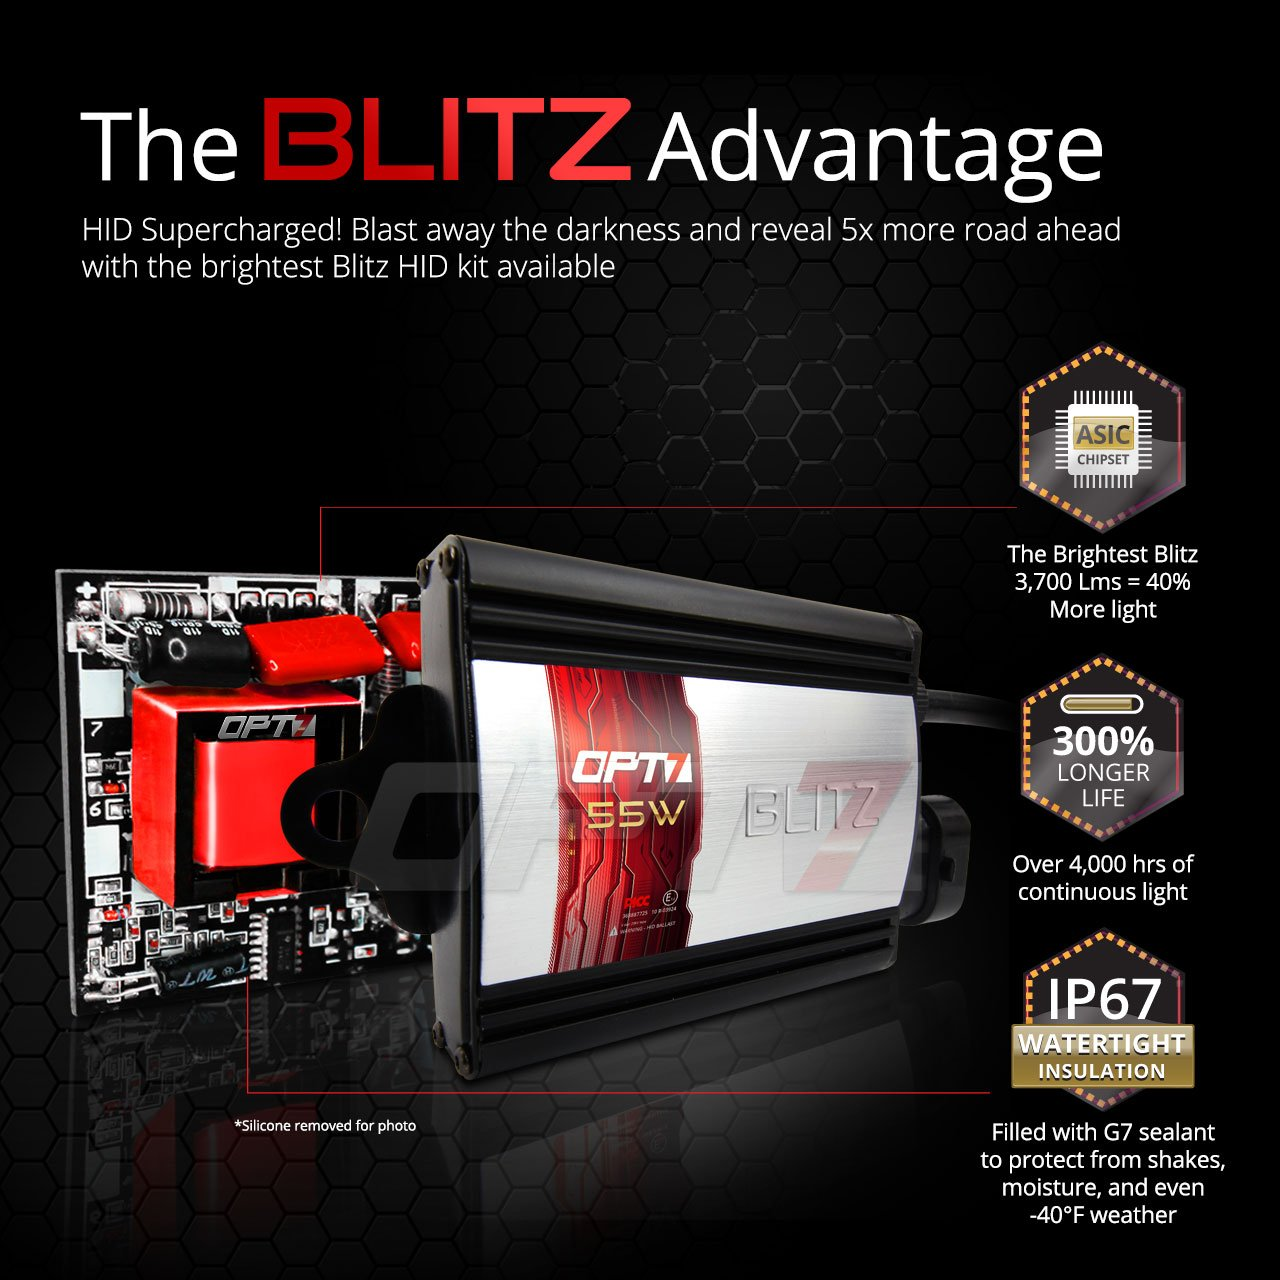 OPT7 Blitz 55W H7 HID Kit - 5X Brighter - 4X Longer Life - All Bulb Colors and Sizes - 2 Yr Warranty [5000K Pure White Xenon Light]